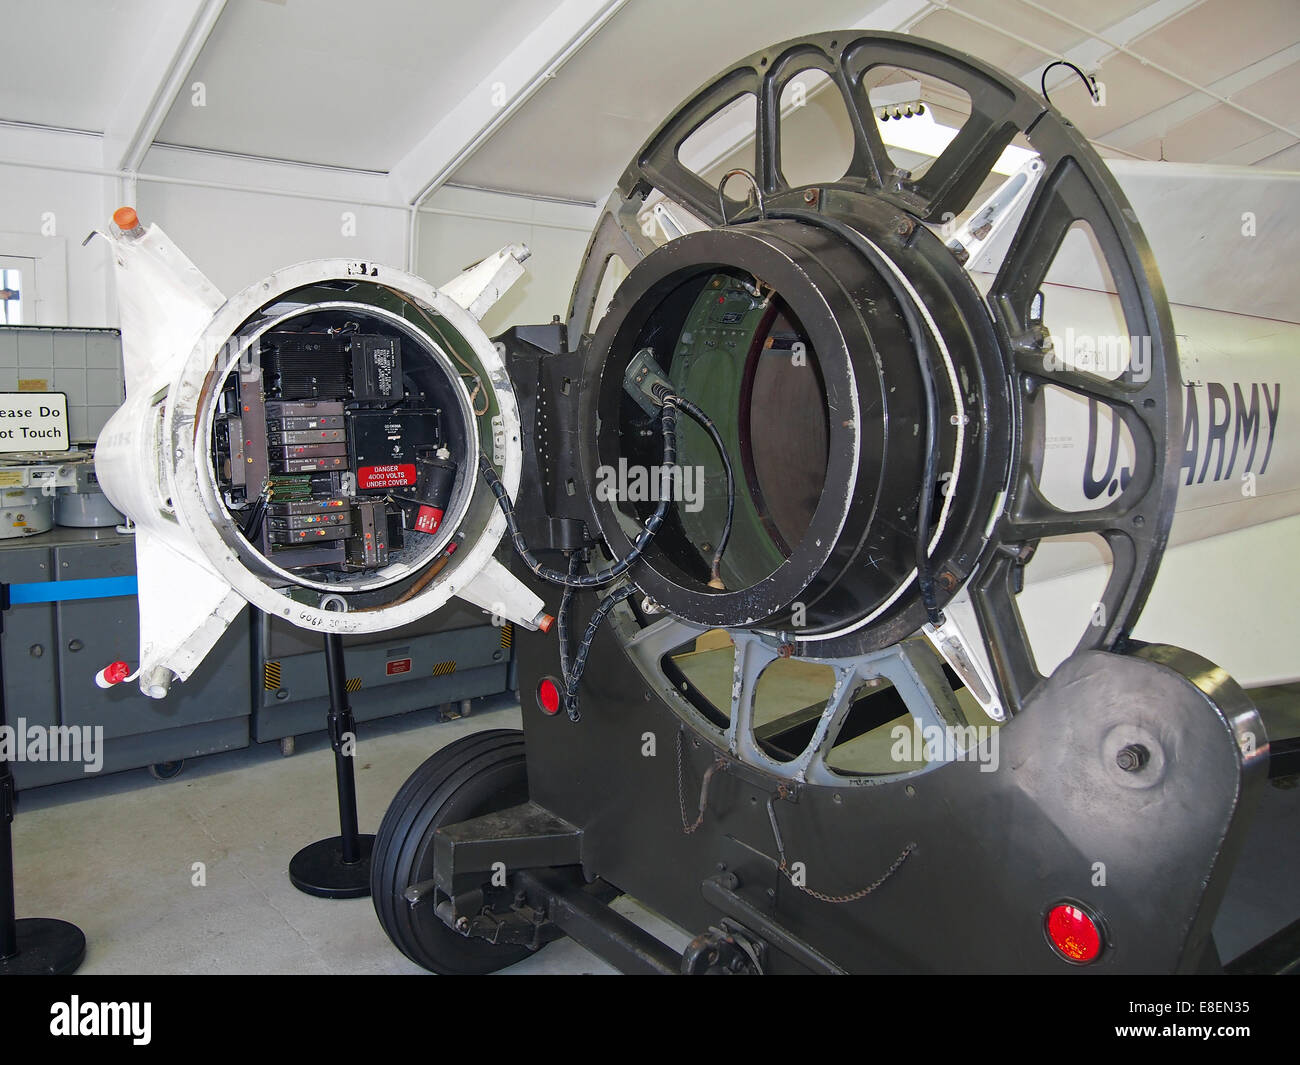 Nike Missile interior, California, USA - Stock Image